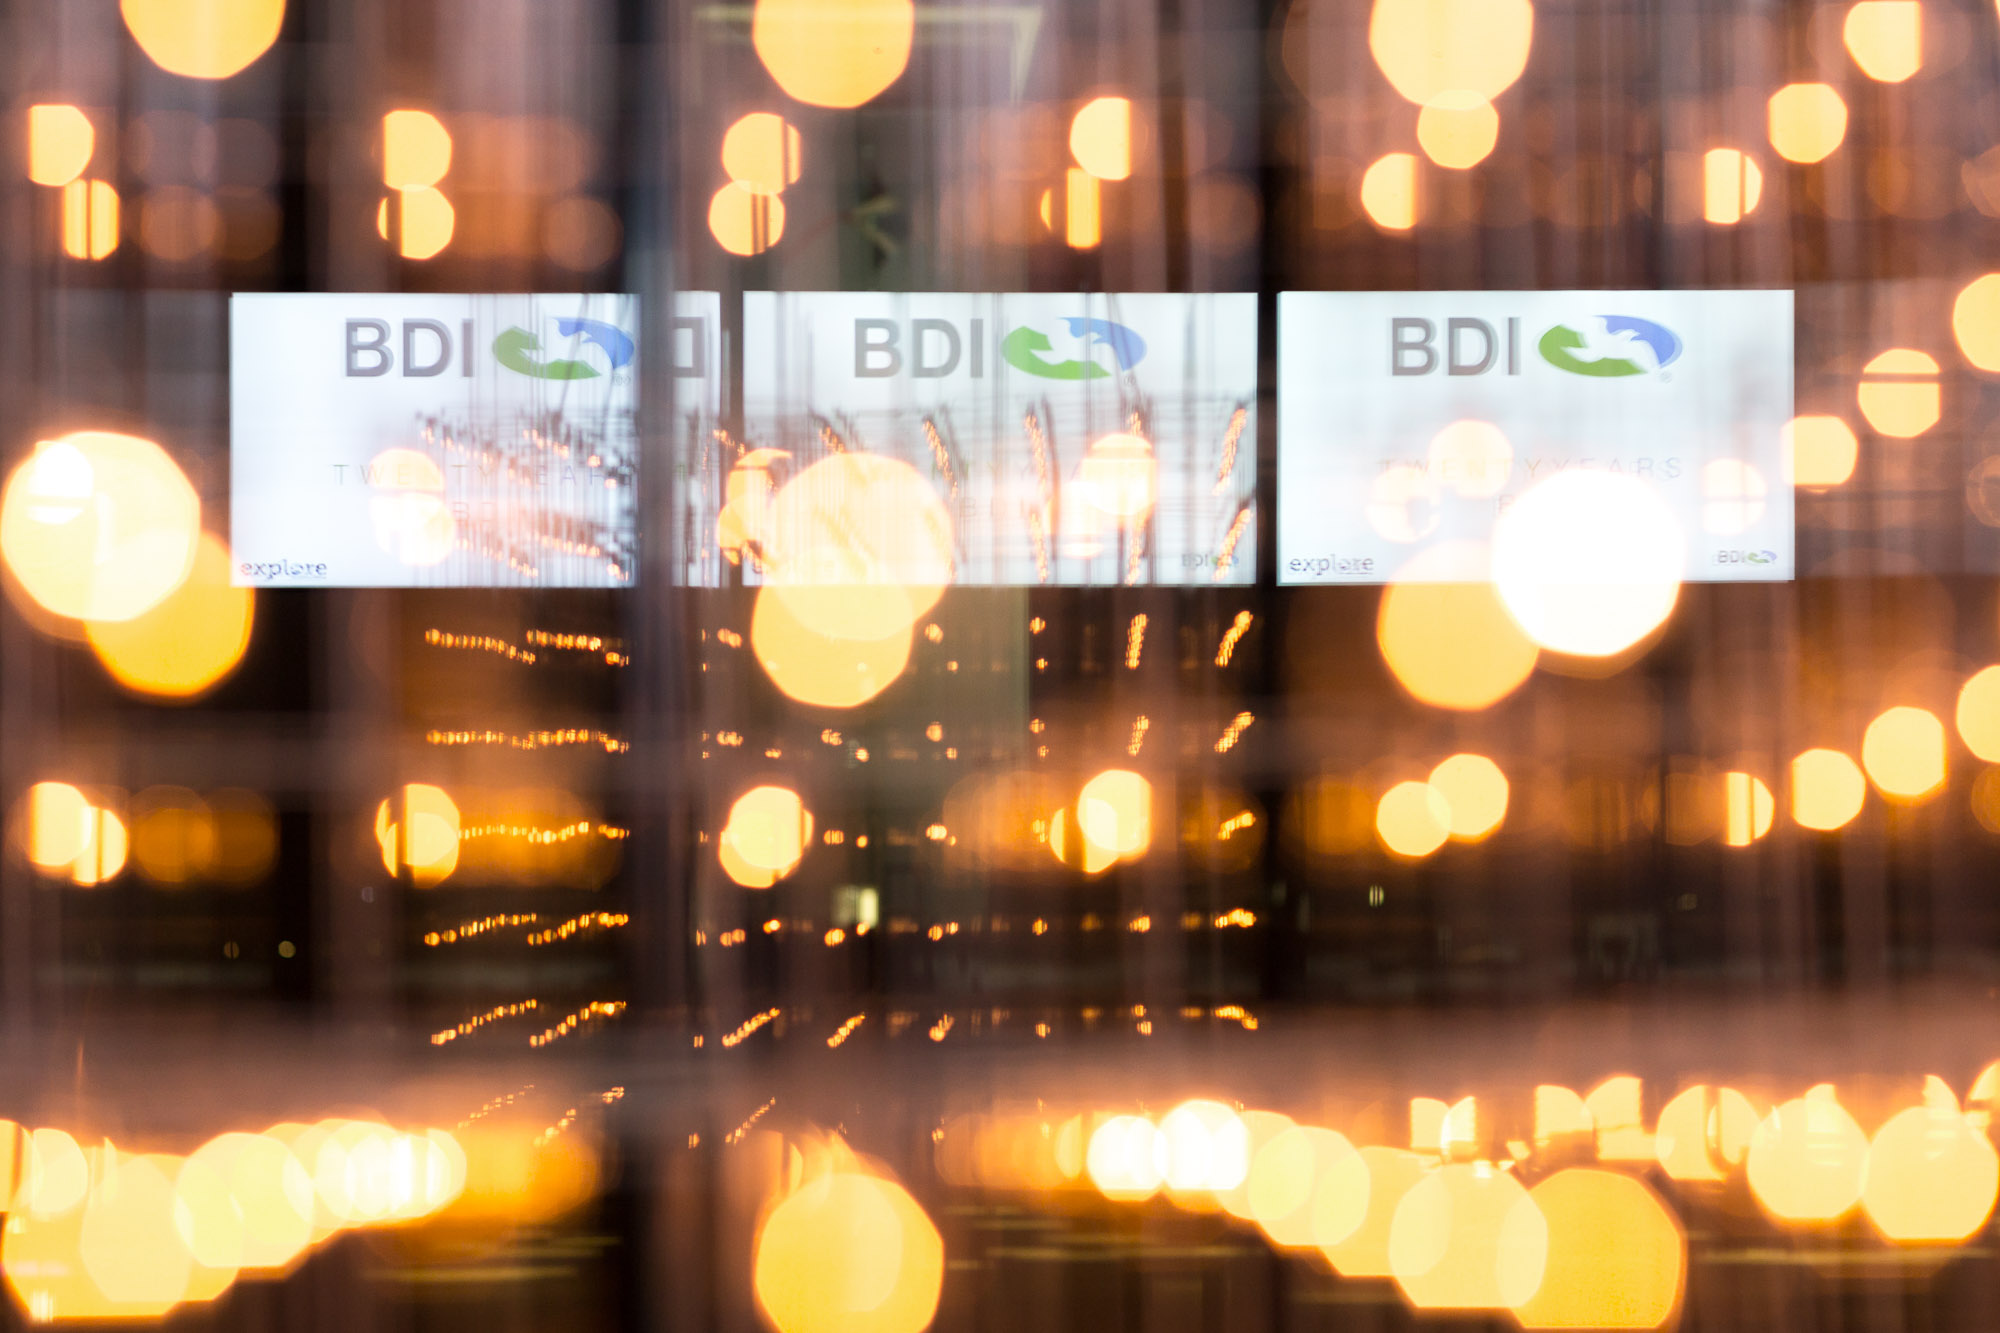 BDI 20 Jahre, Incentive by KOOP Live Marketing Eventagentur in Wien